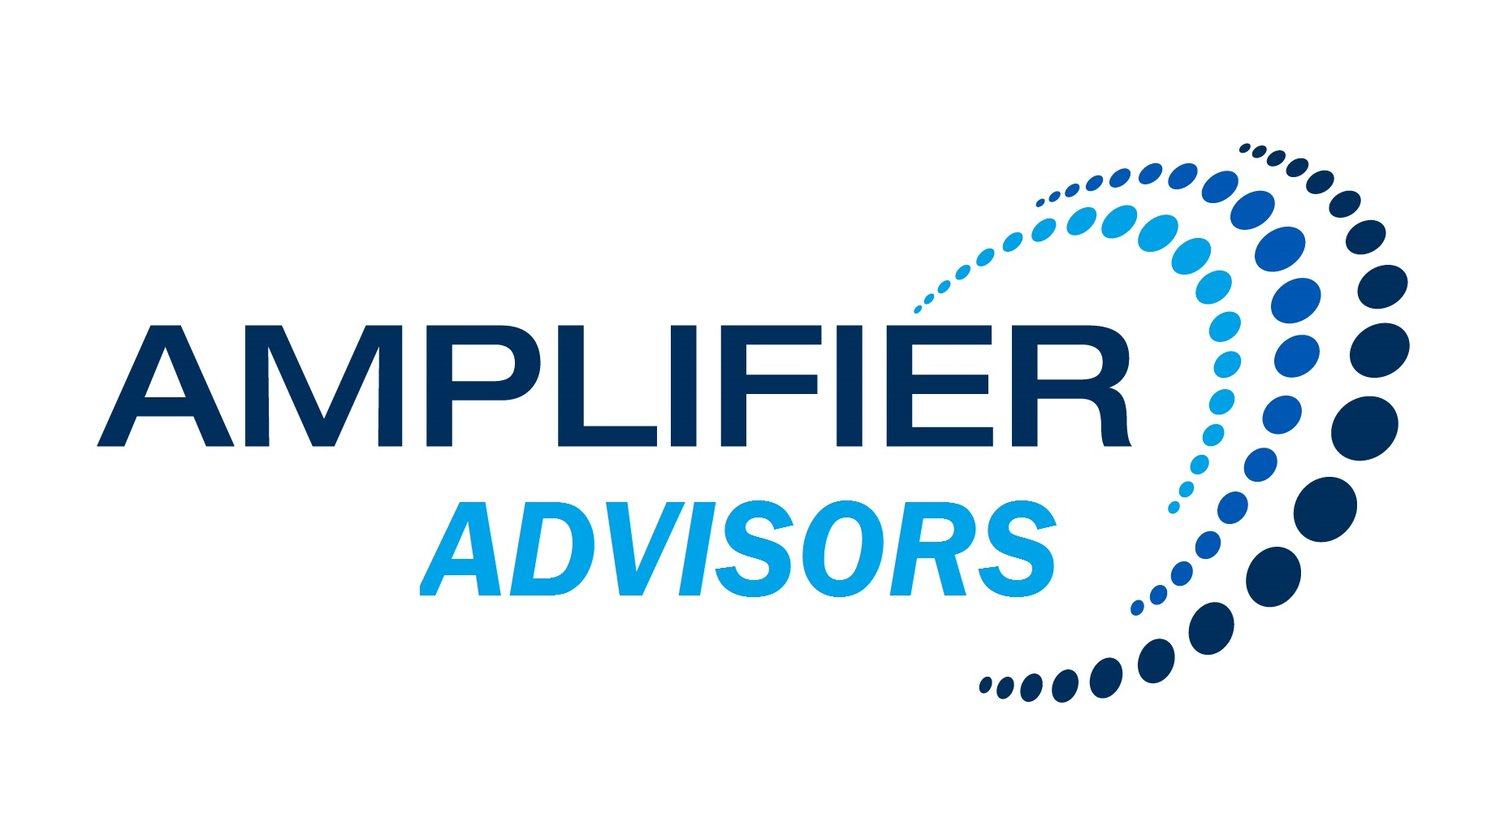 Amplifier Advisors